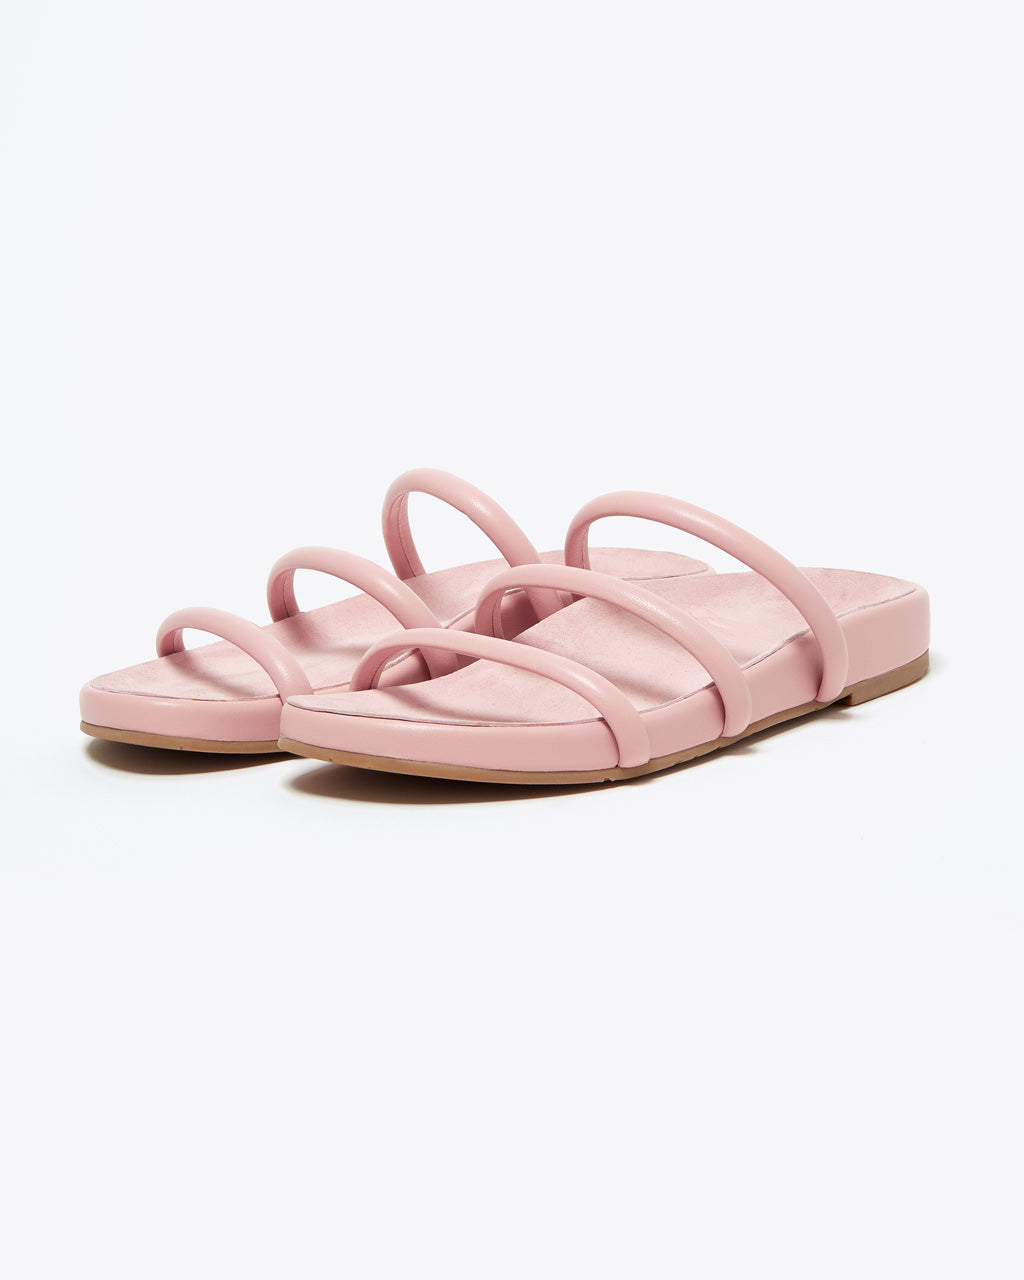 light blush sandals with 3 faux leather top straps